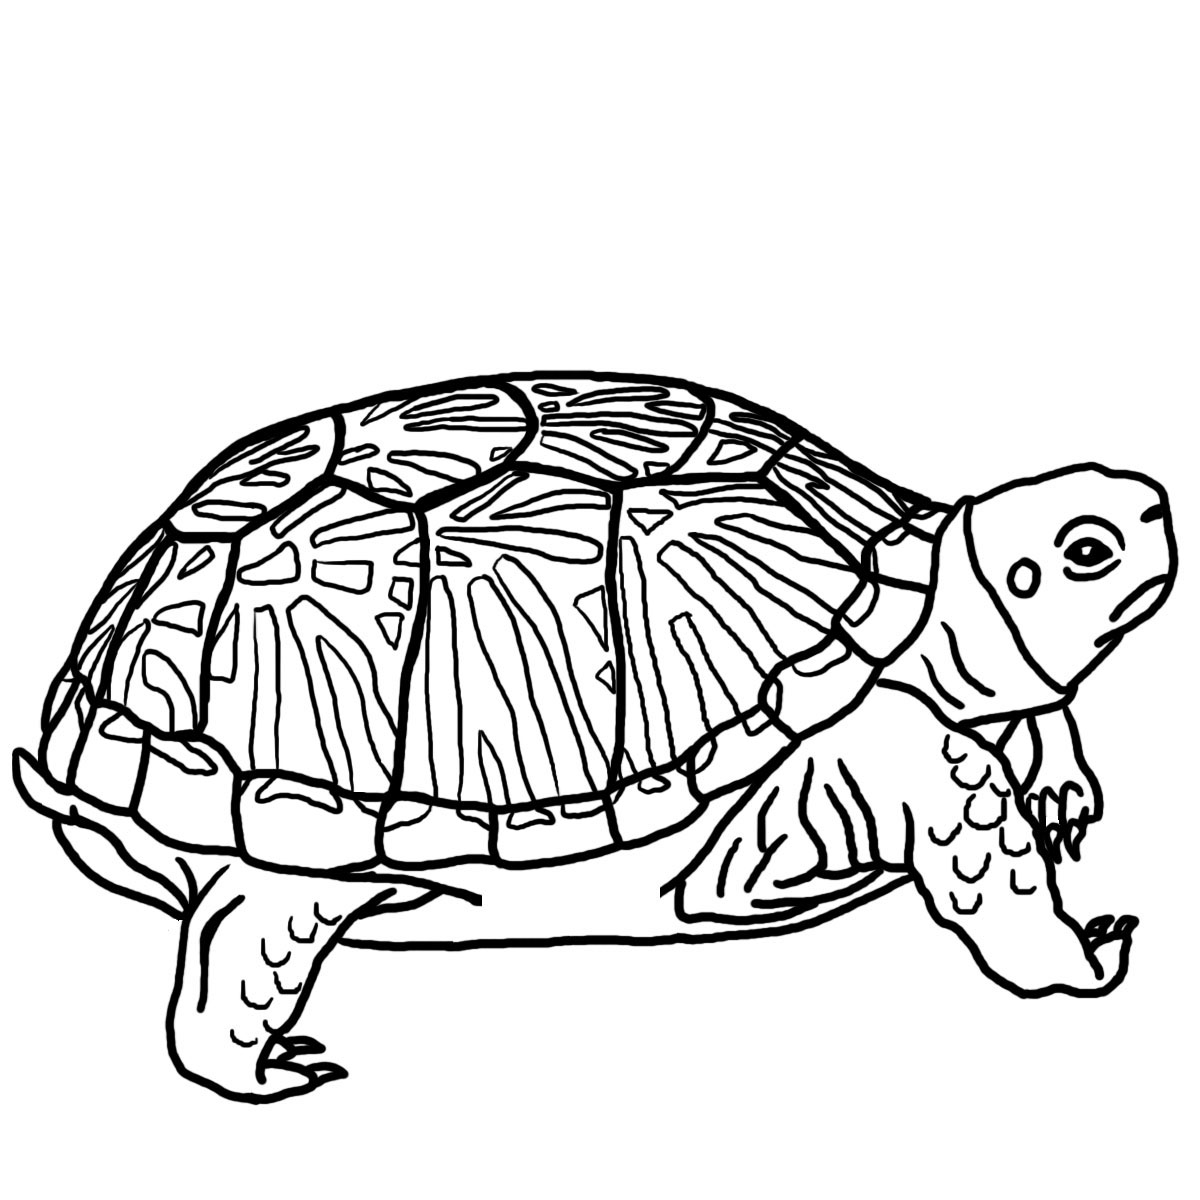 1200x1200 Turtle Clipart Black And White Many Interesting Cliparts